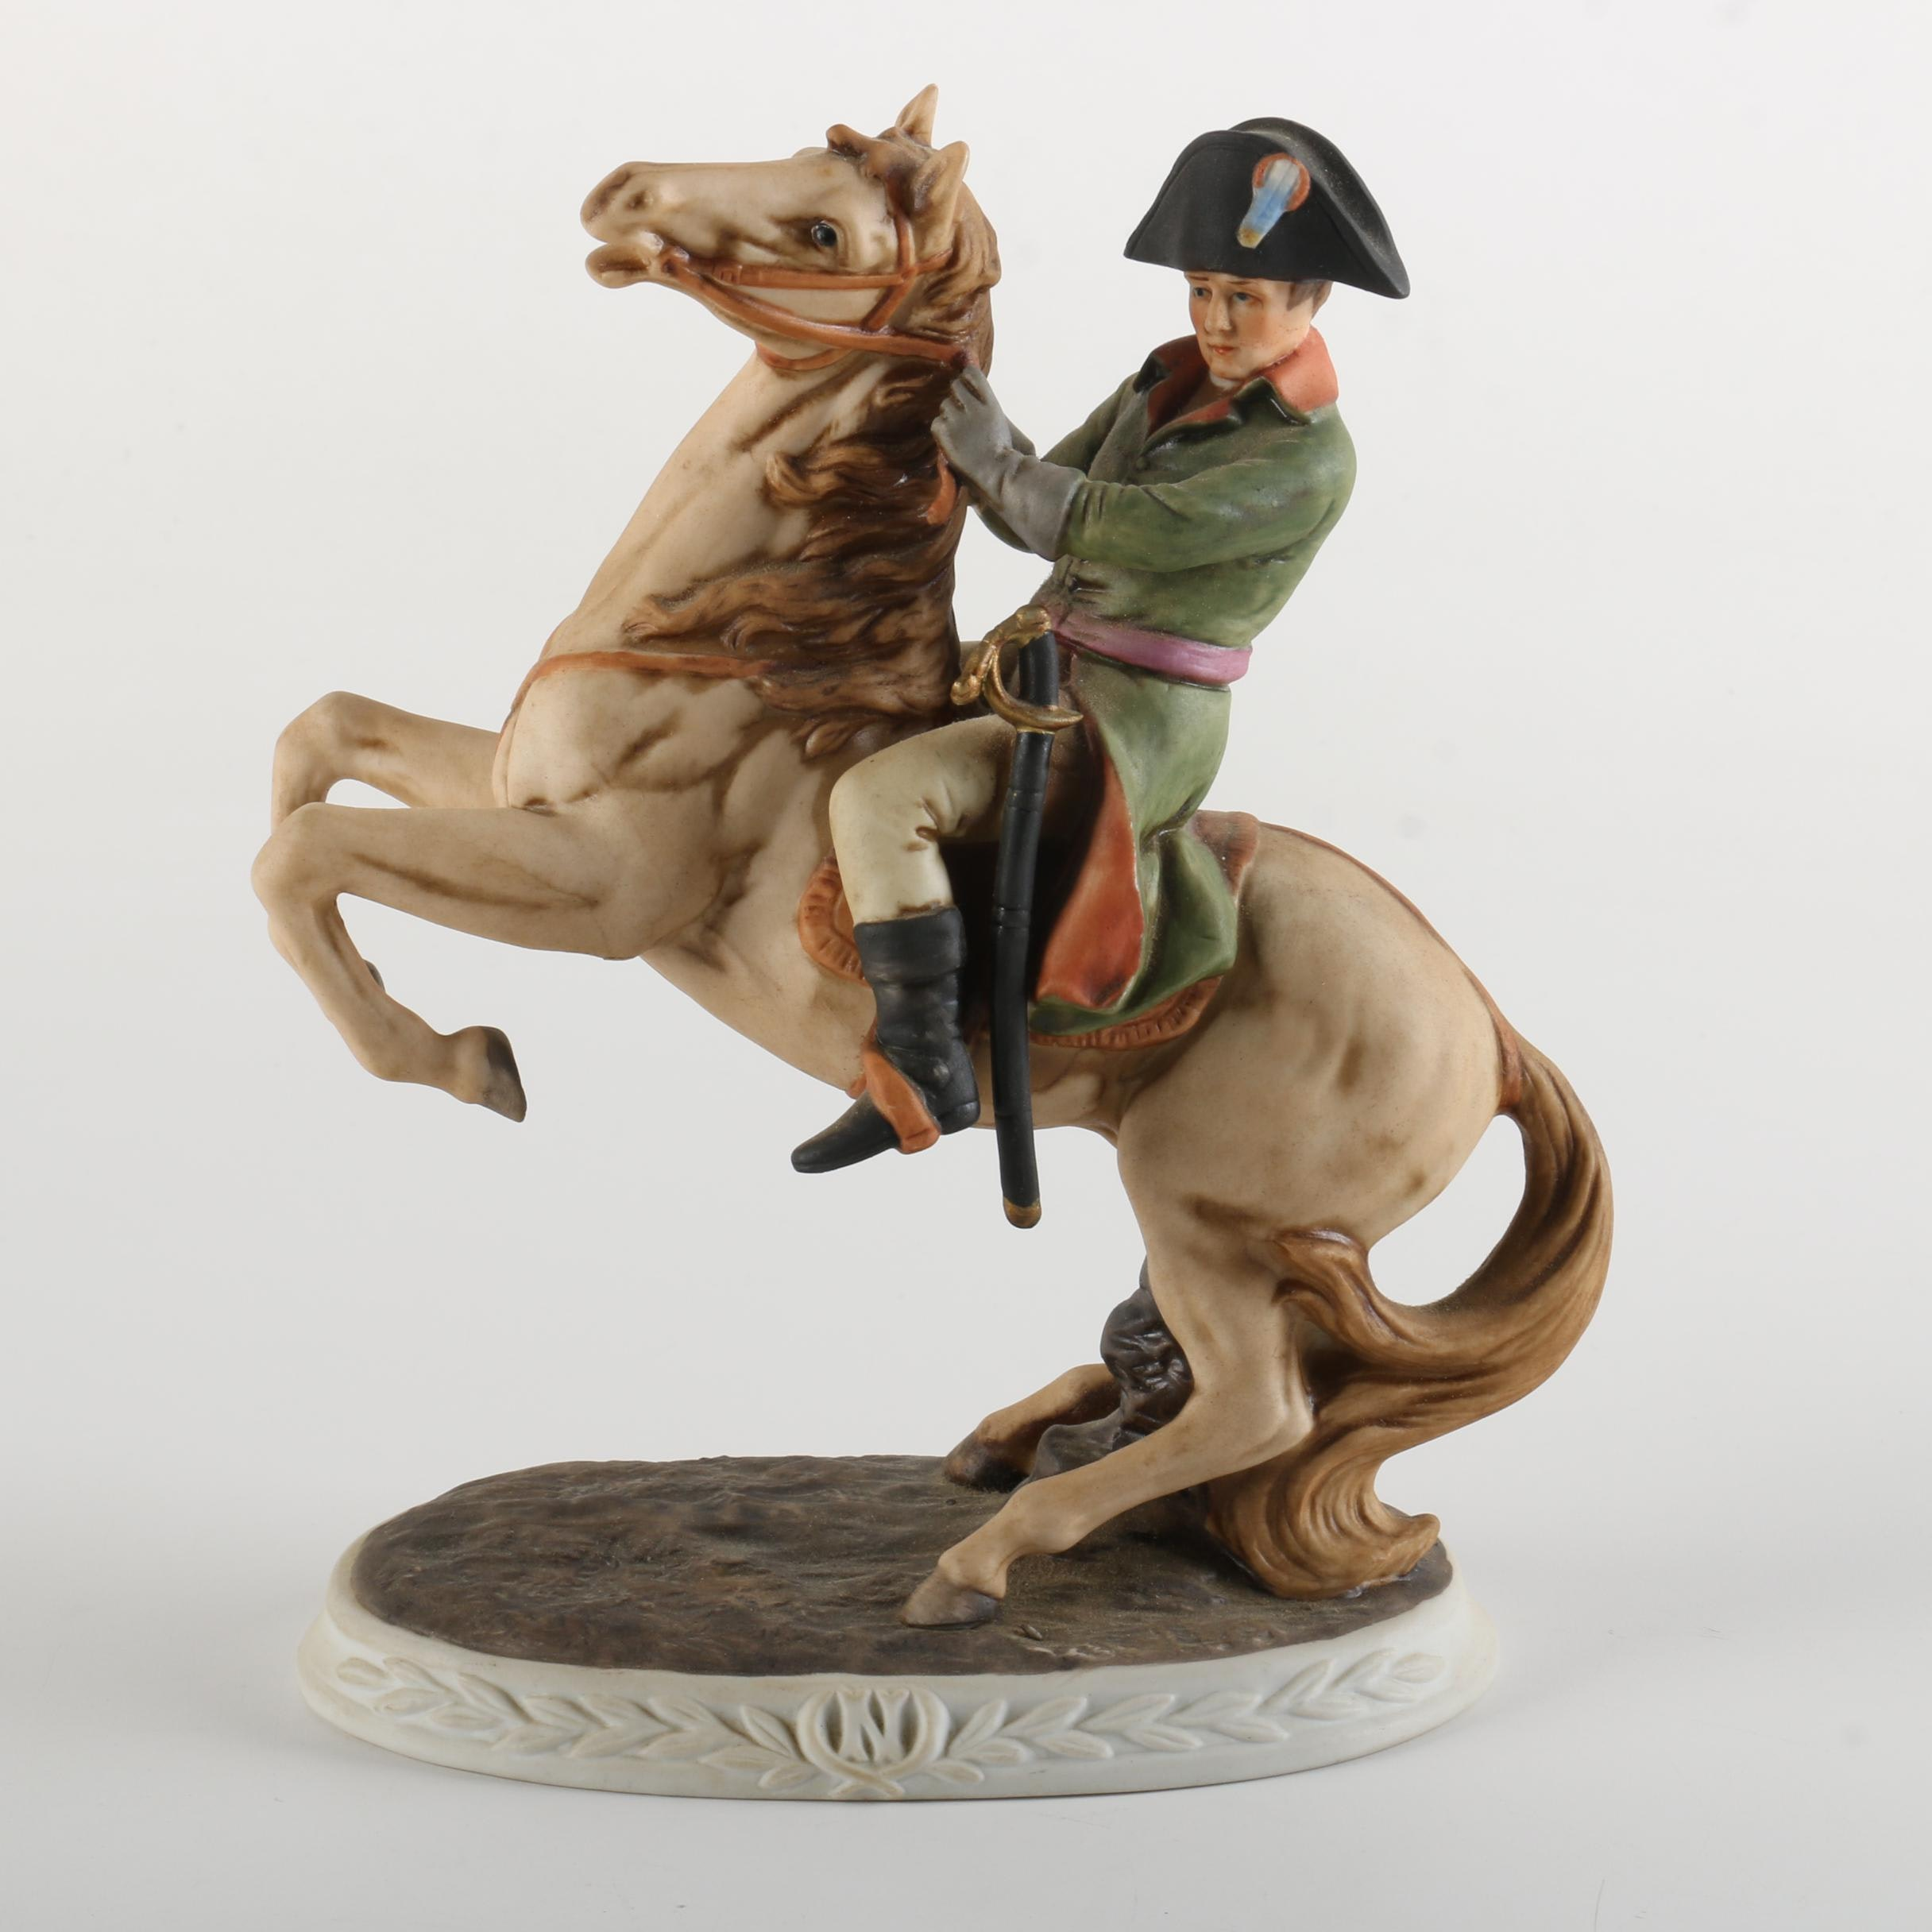 Marks and Rosenfield Porcelain Napoleon Figurine